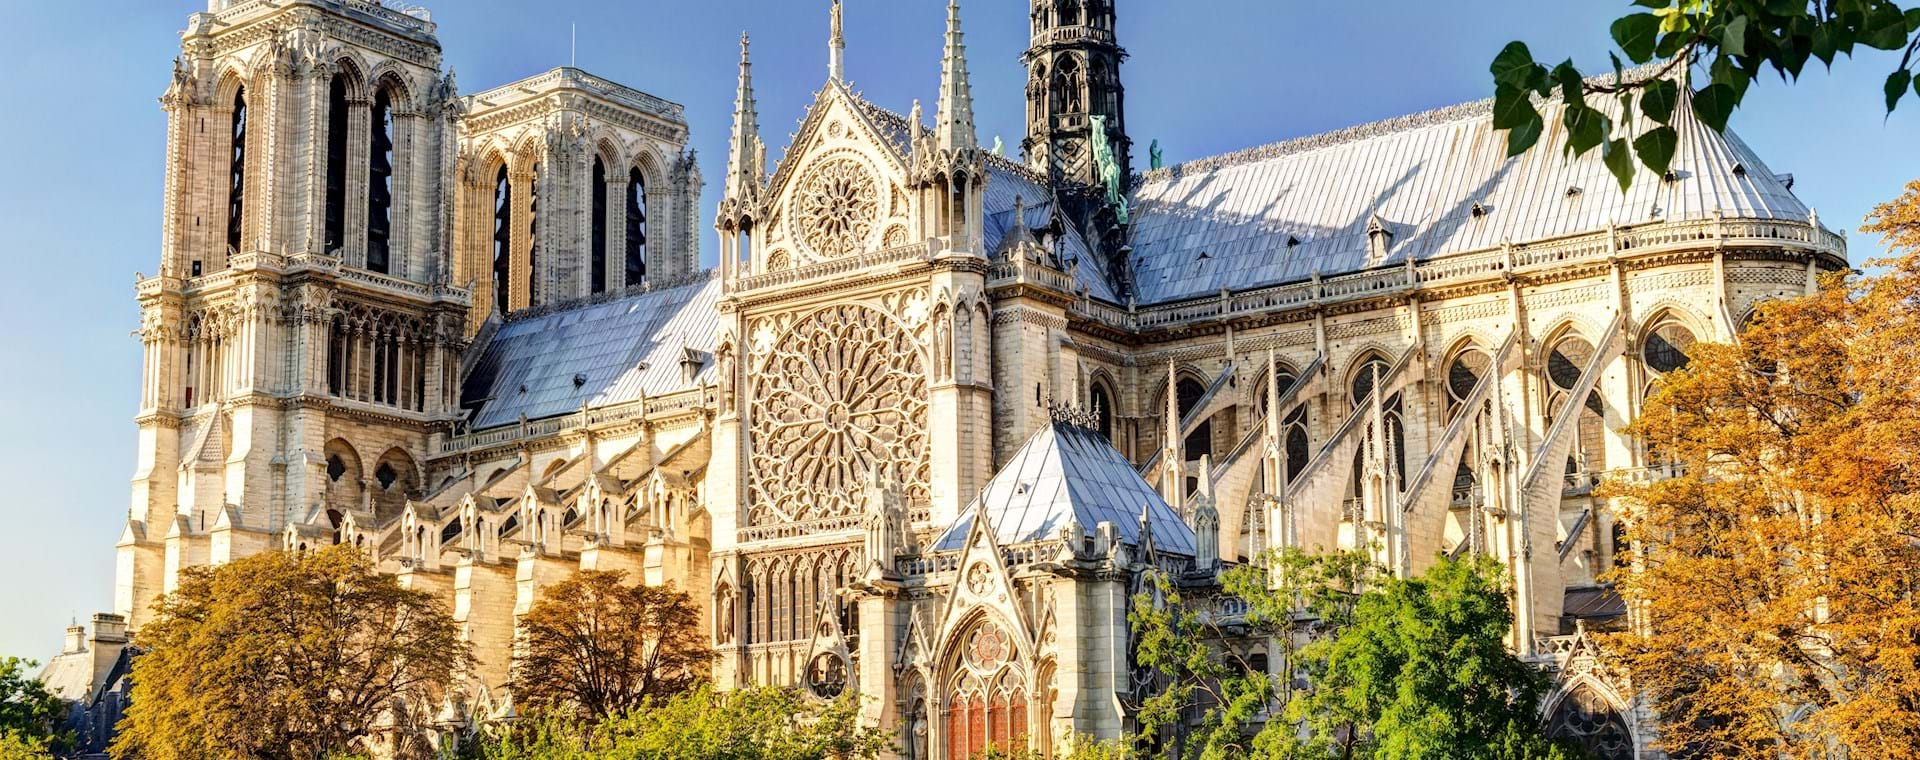 Best of Paris: Louvre Museum & Notre Dame Island with Sainte Chapelle Combo Saver Tour